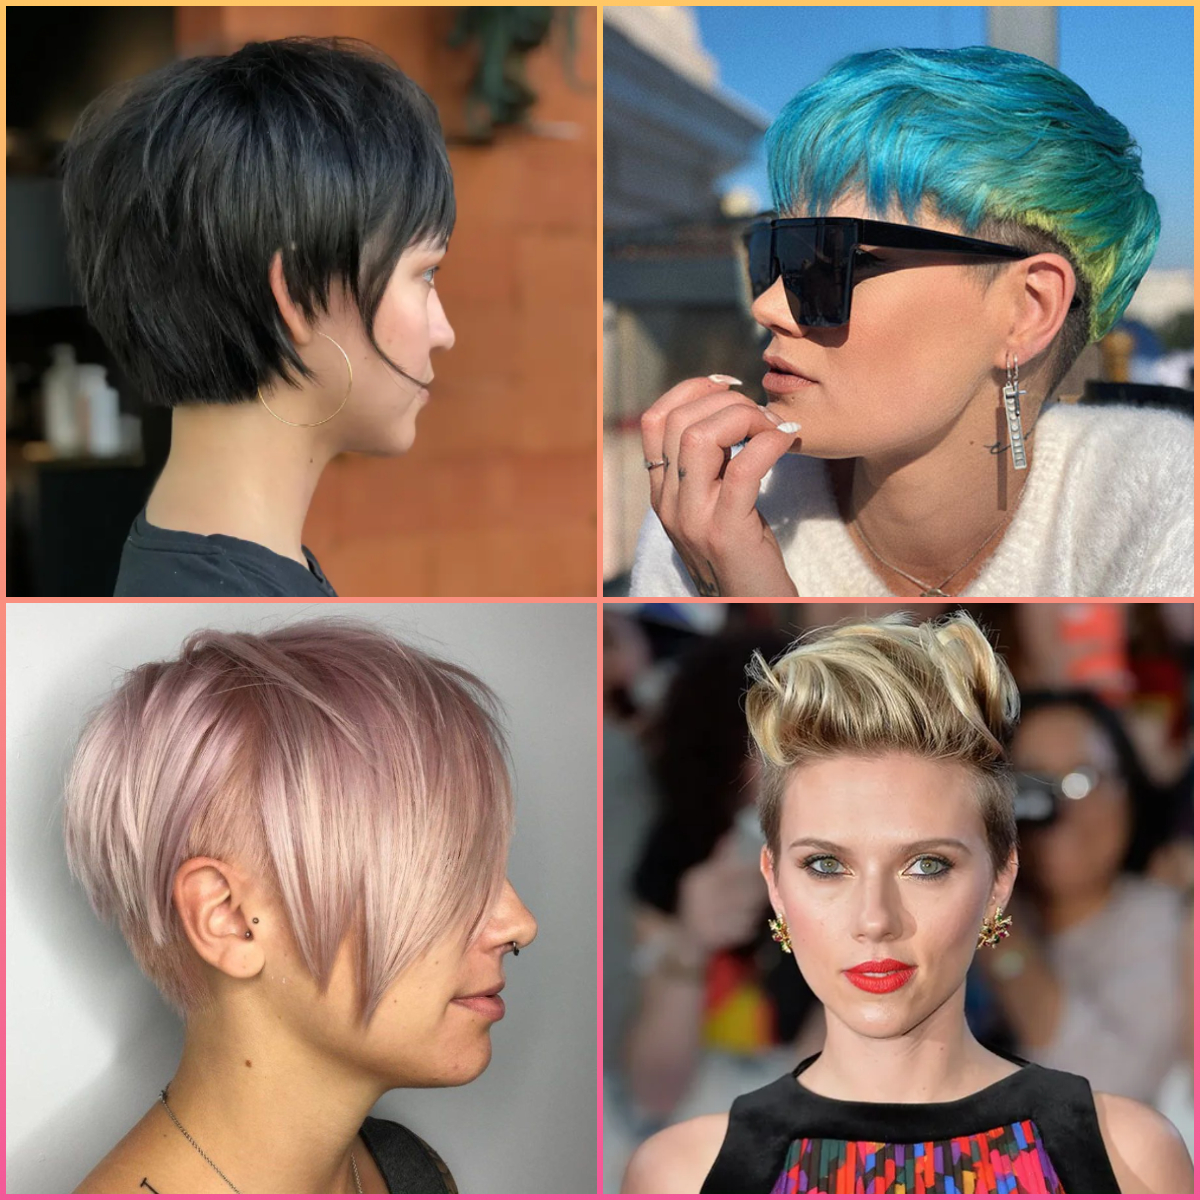 40+ Pixie Style New Short Haircuts 2020 Latest Elegant Women Hairstyles For  Summer |